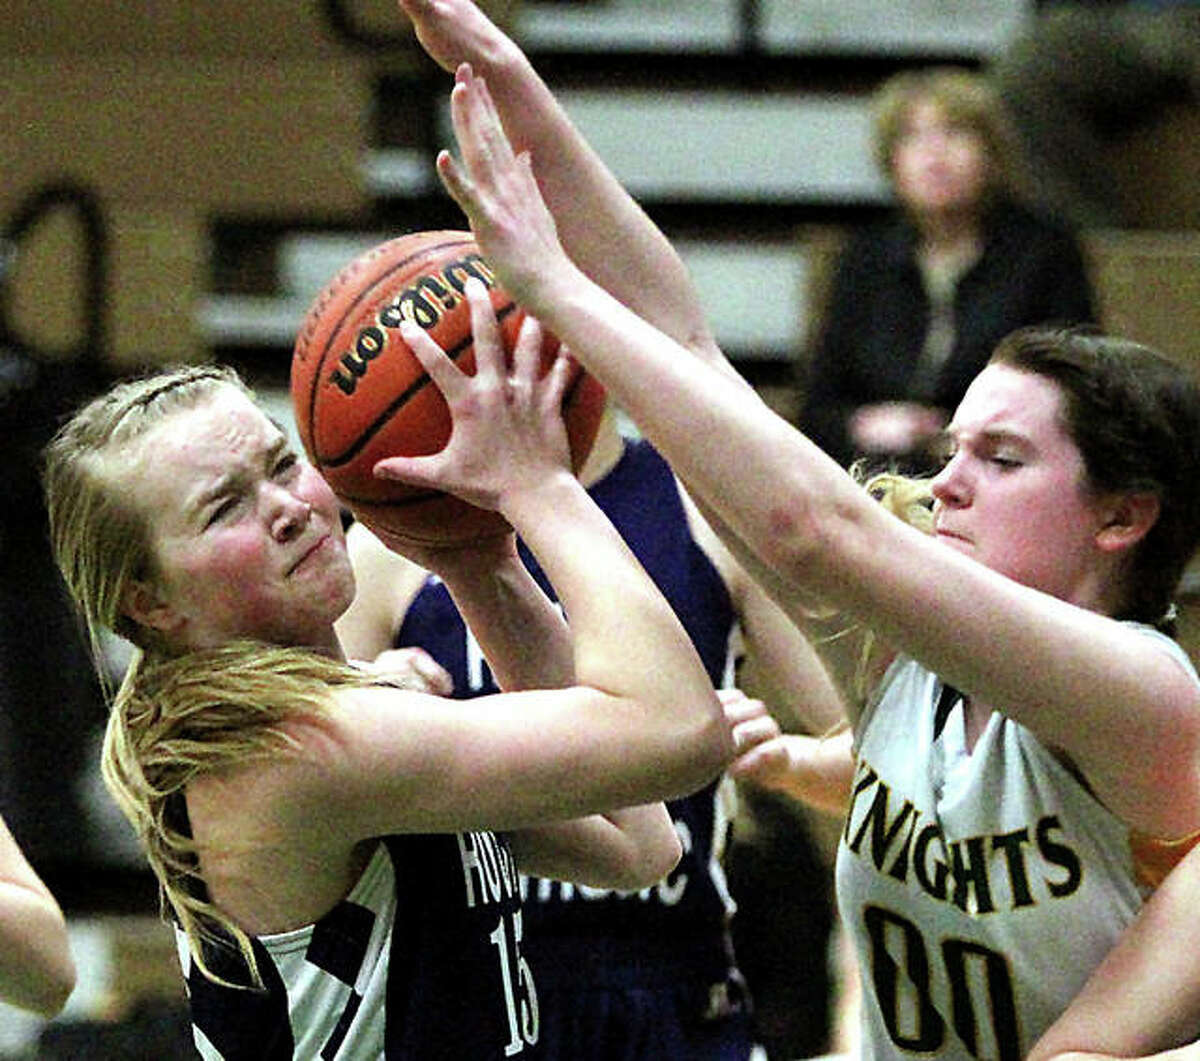 Mallory Martin of East Alton-Wood River, left, controls the ball while being guarded by a Metro-East Lutheran player last season. The Oilers girls and boys basketball teams' 2020-21 season has been cancelled for now.